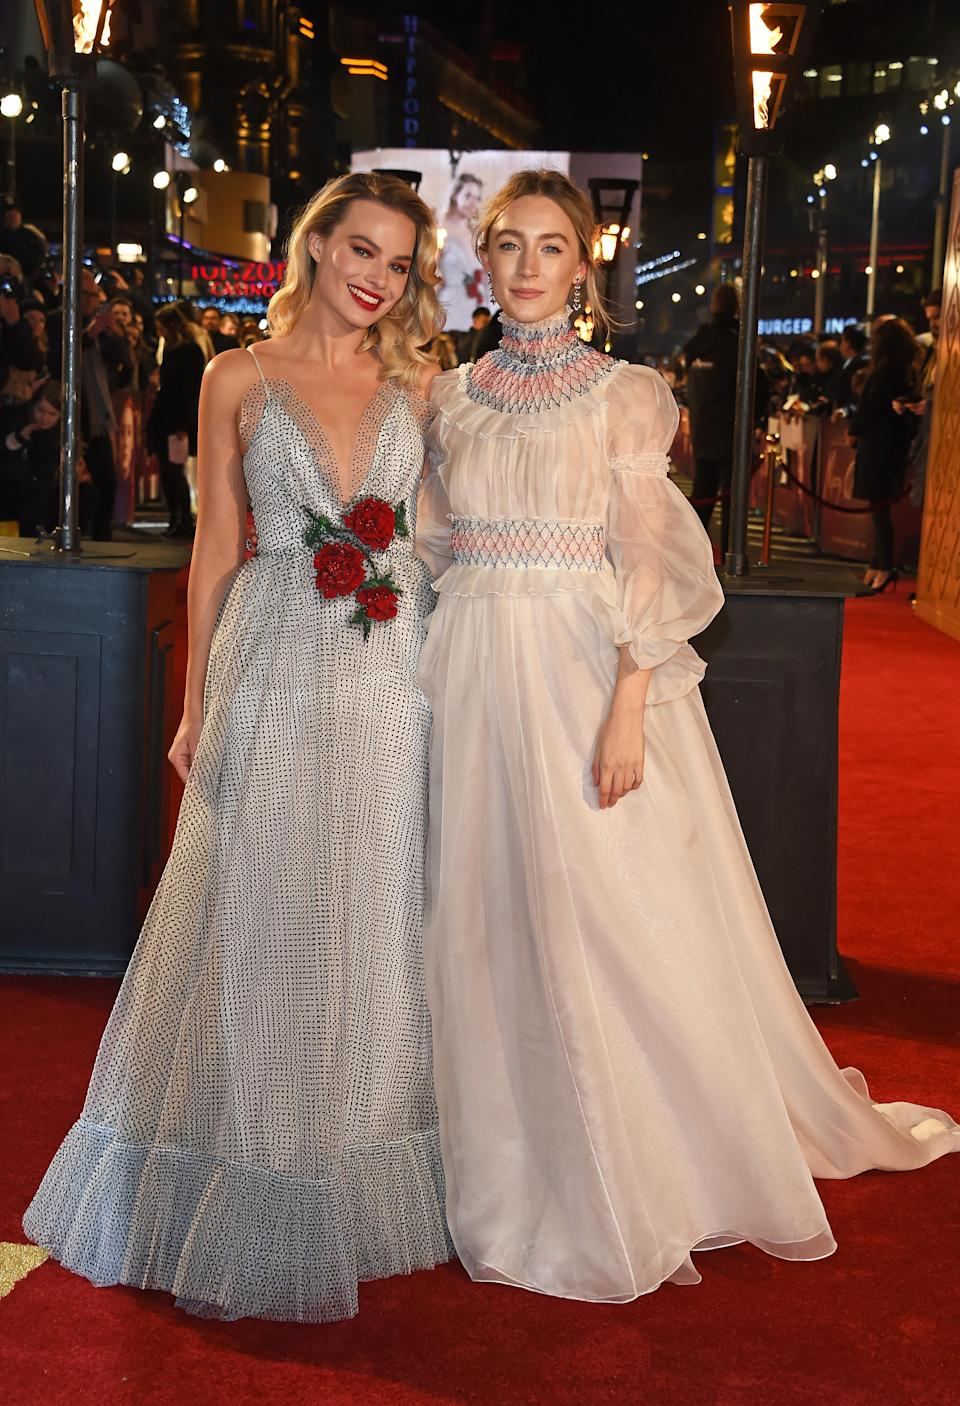 <p>The actors pose together at the London premiere of their upcoming film. Saoirse wore a gown by Carolina Herrera paaired with Giuseppe Zanotti shoes and Chopard jewels, while Margot wore a polka dot dress with a plunging neckline by Rodarte. <em>[Photo: Getty]</em> </p>